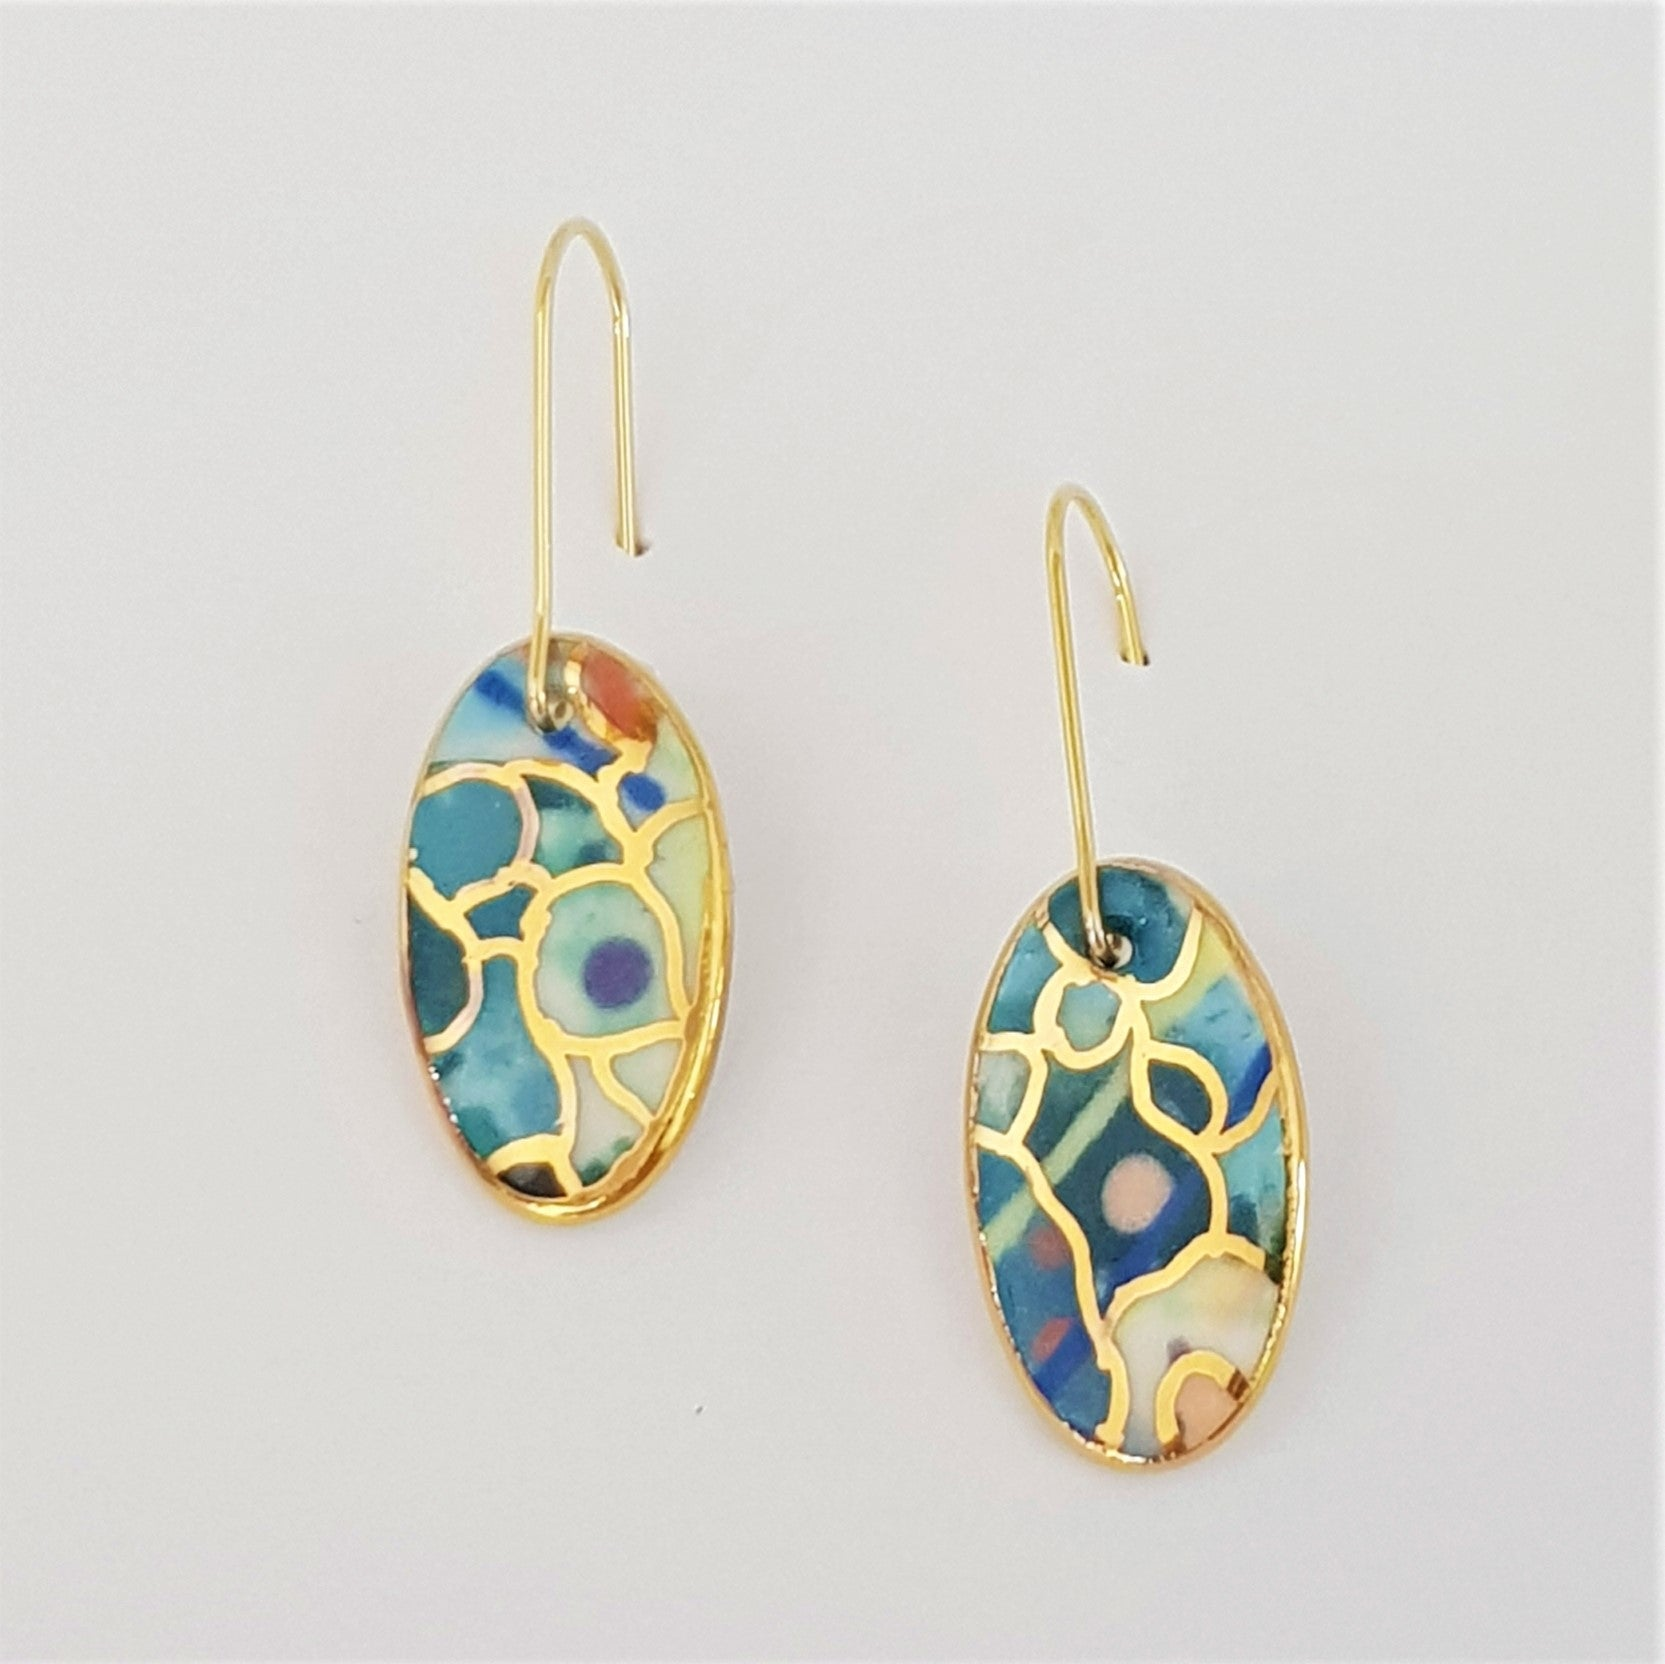 Oval mini dangles in teal and multi colours with gold.